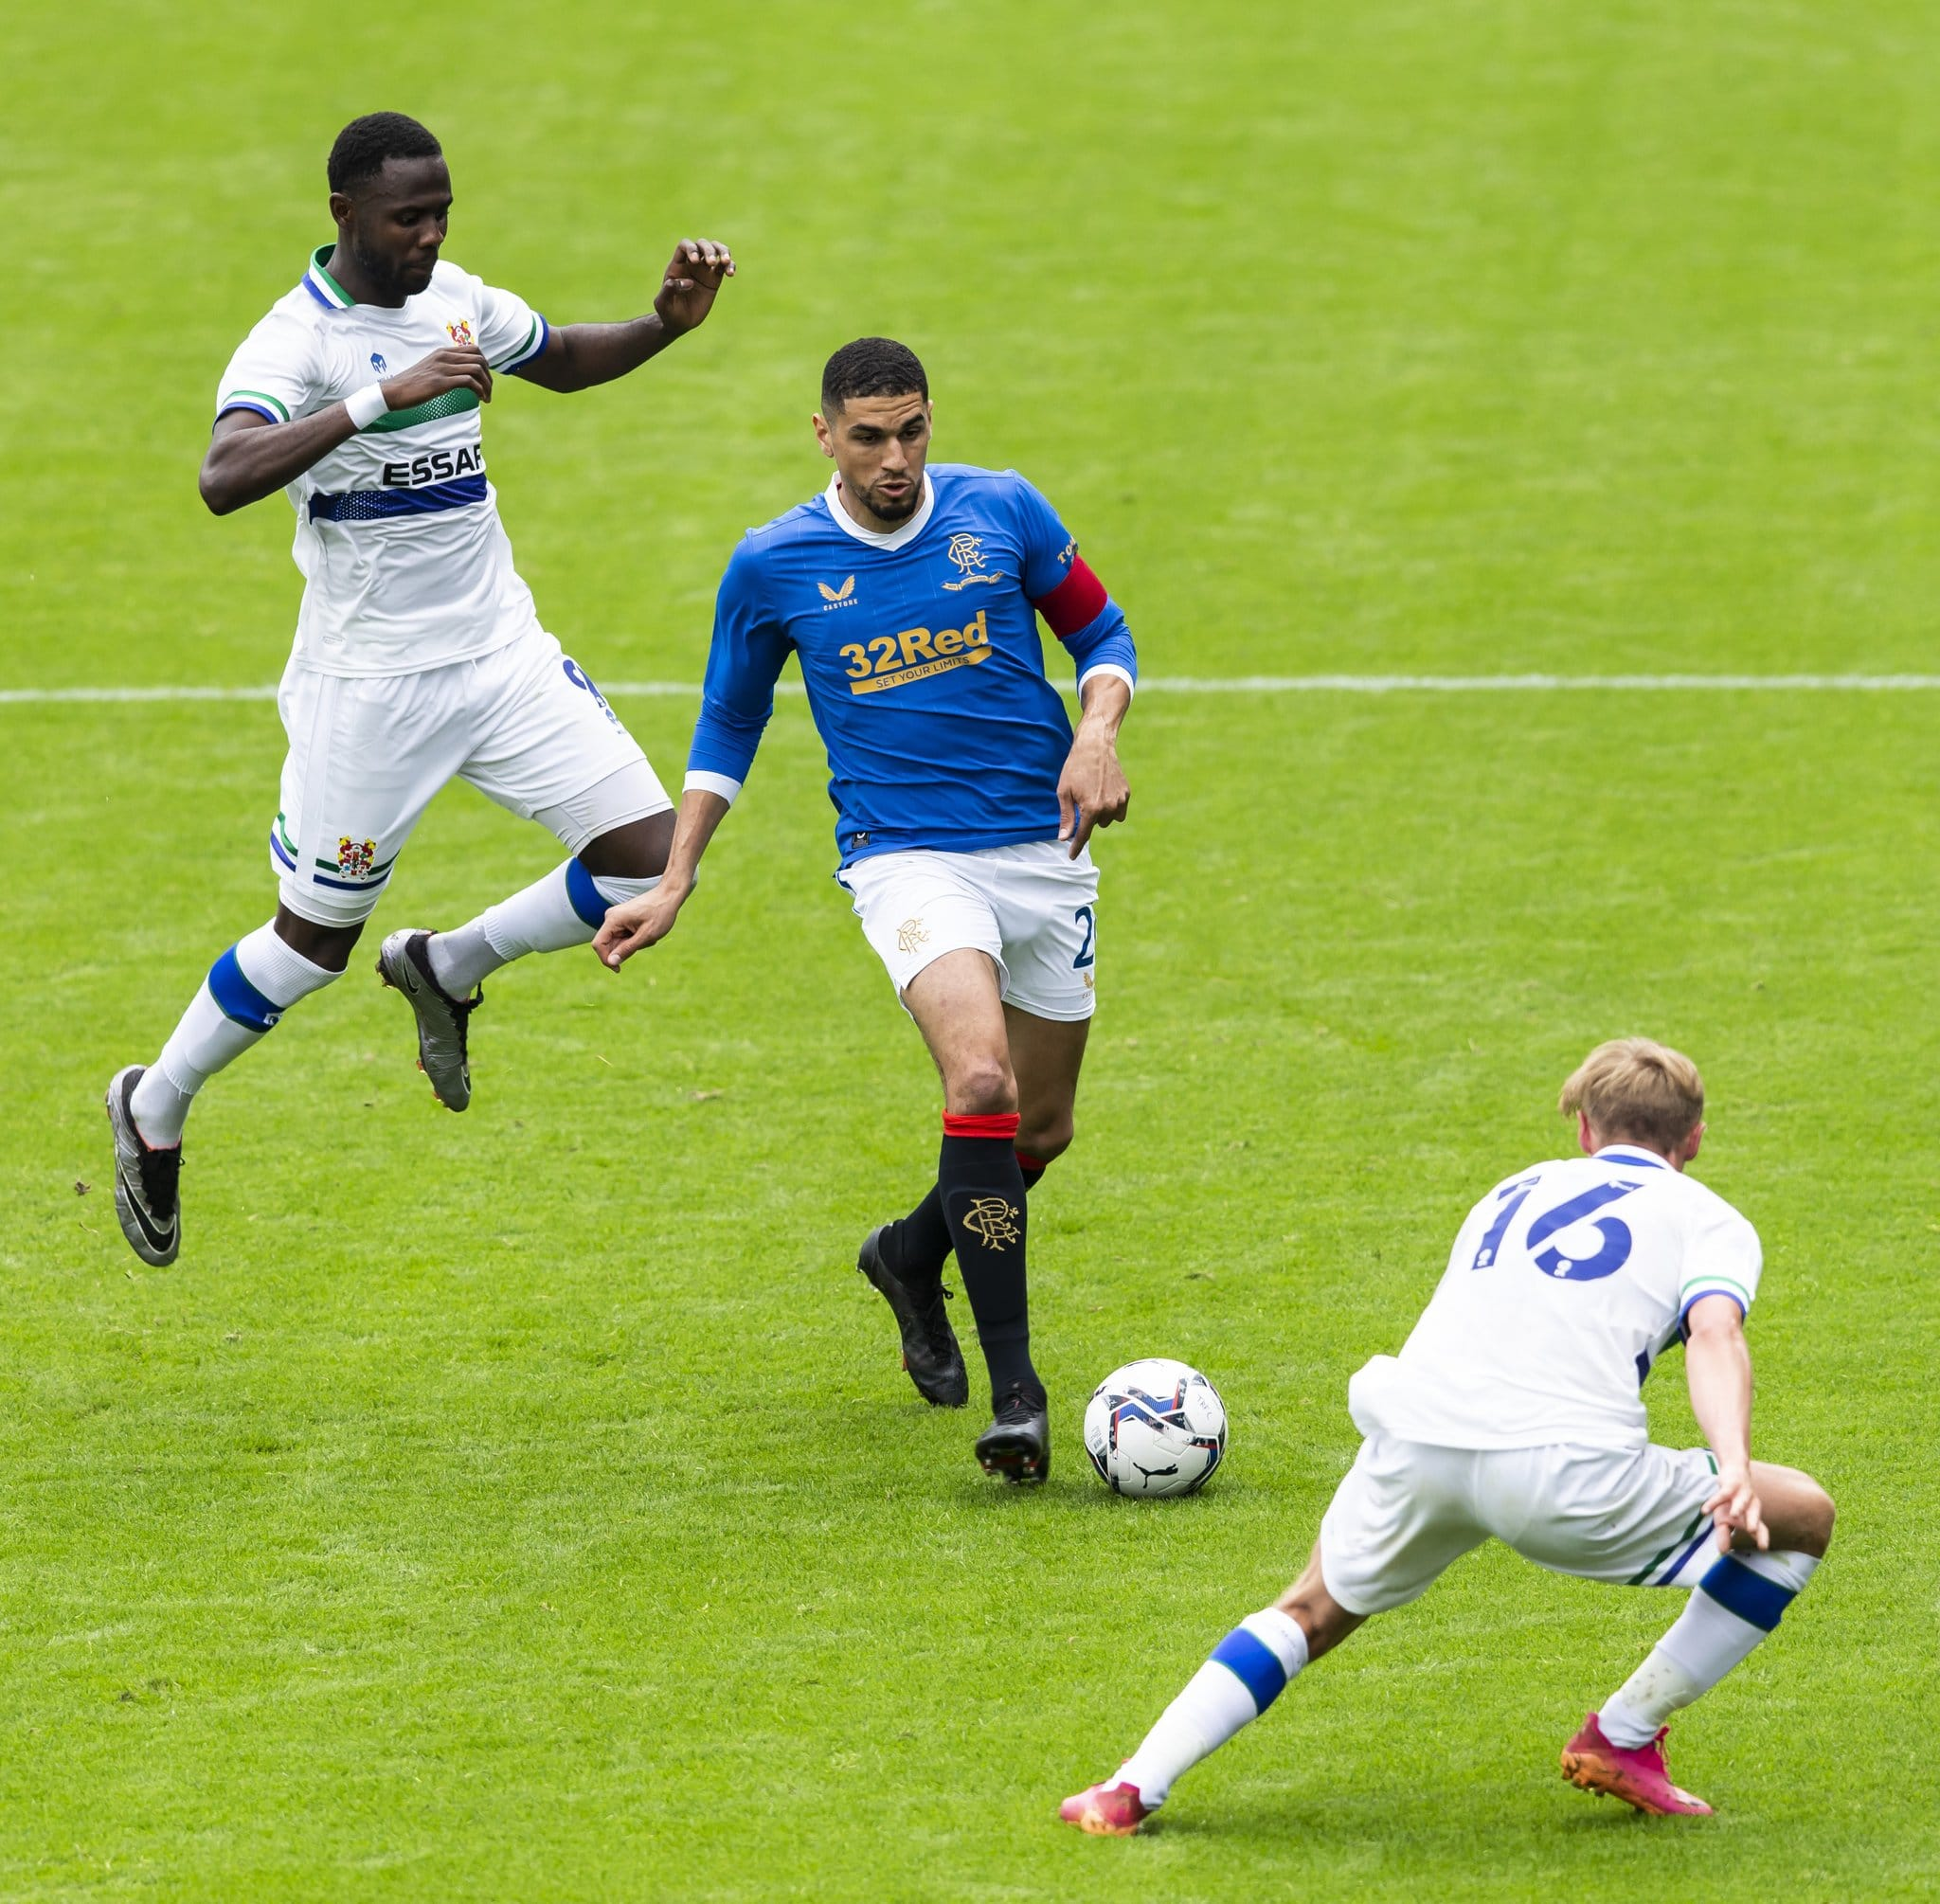 Pre-season: Balogun, Aribo In Action As Rangers Lose To 4th Division Side Tranmere Rovers